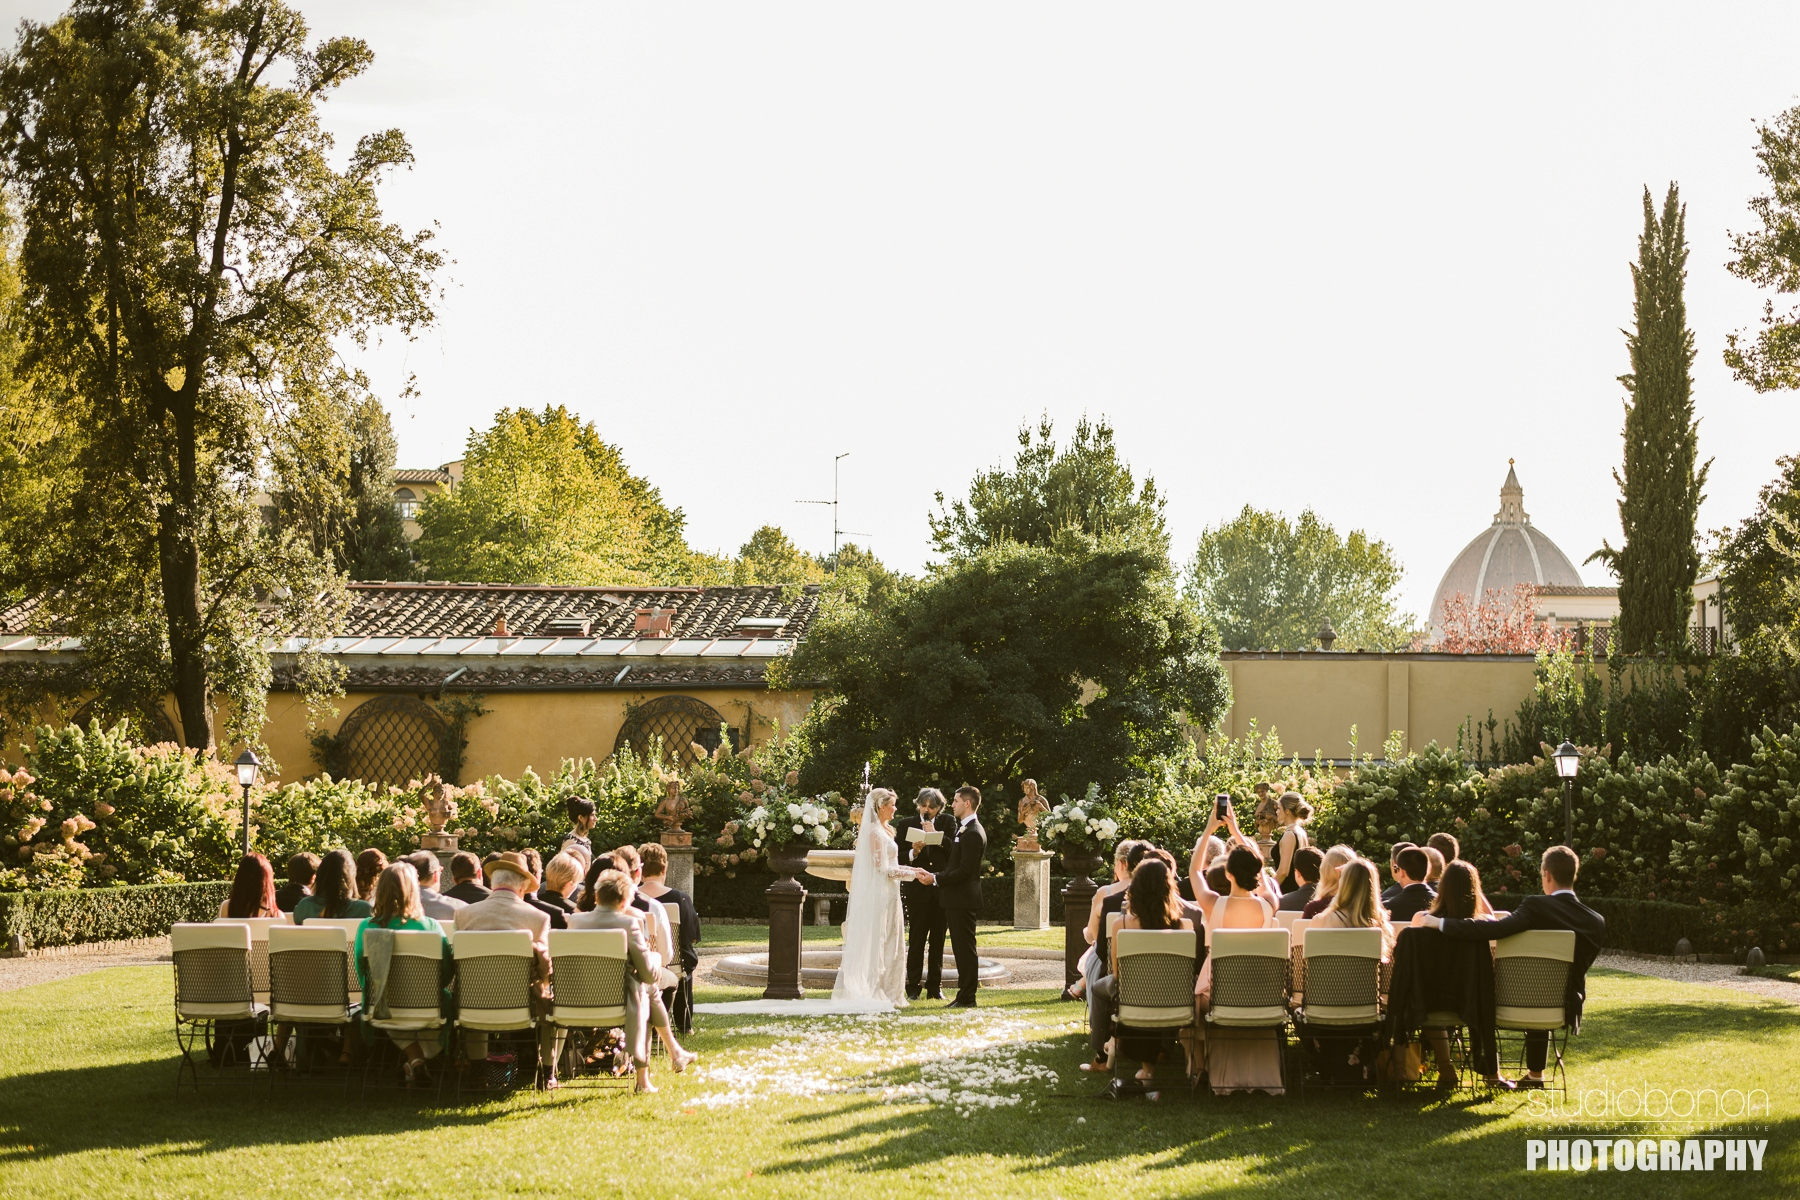 Unforgettable outdoor ceremony at Hotel Four Seasons Florence into the Gherardesca garden park